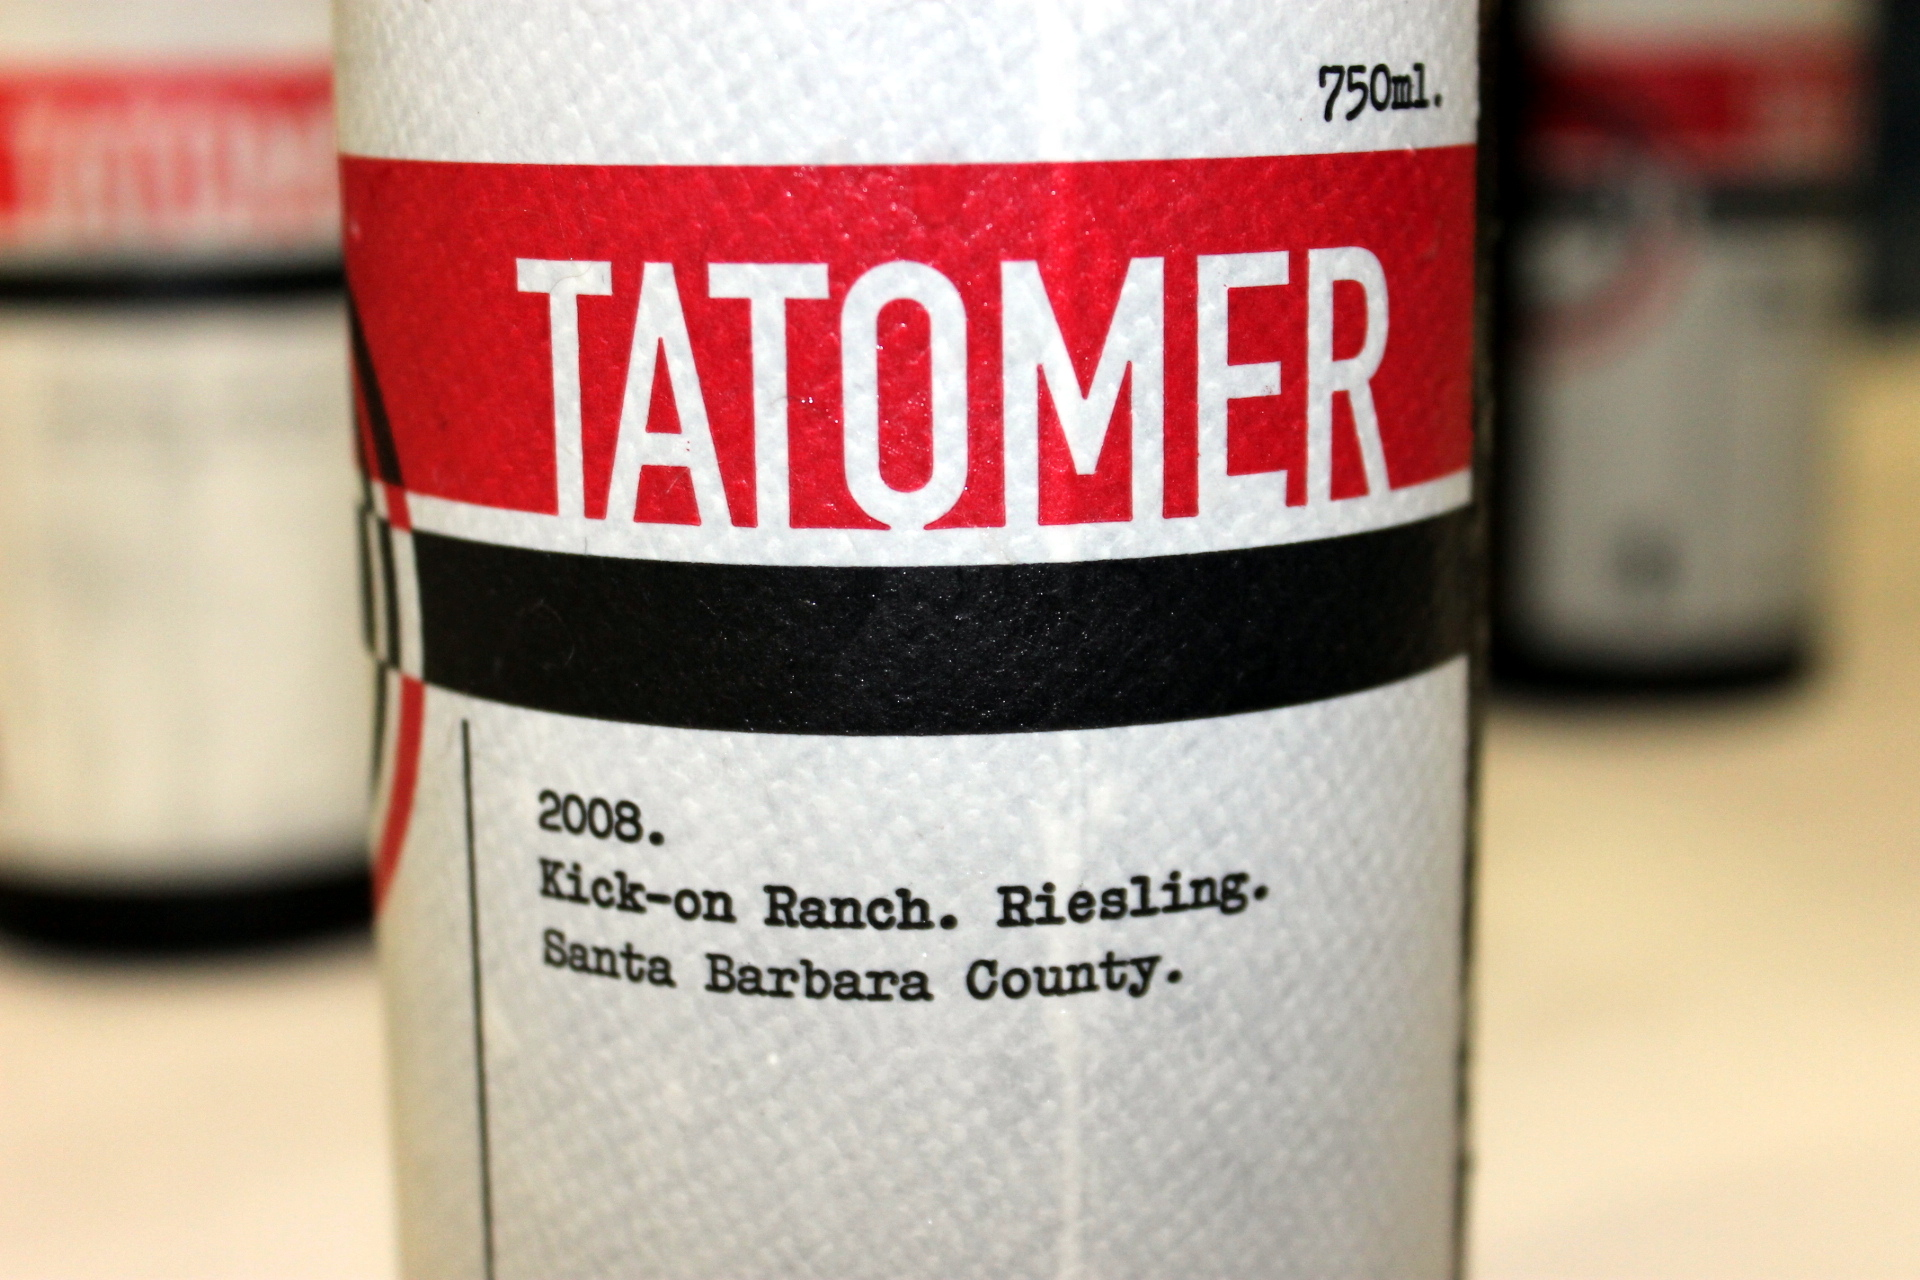 Tatomer Kick-on Ranch Riesling